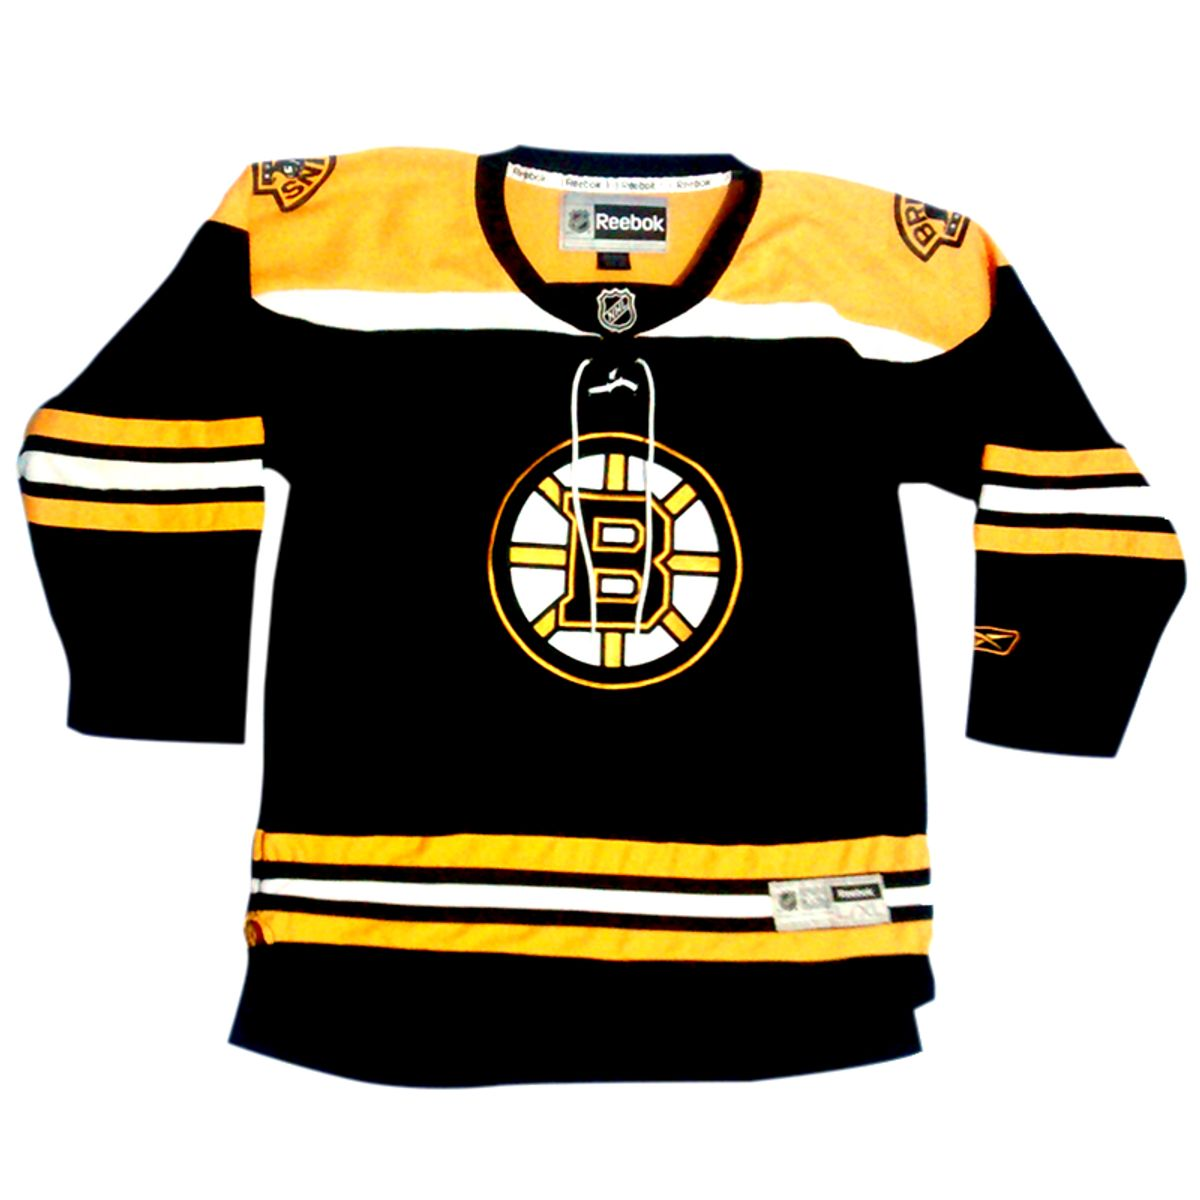 camisa hockey boston bruins 100% original - esportes rebook a4e2ca690a4d0